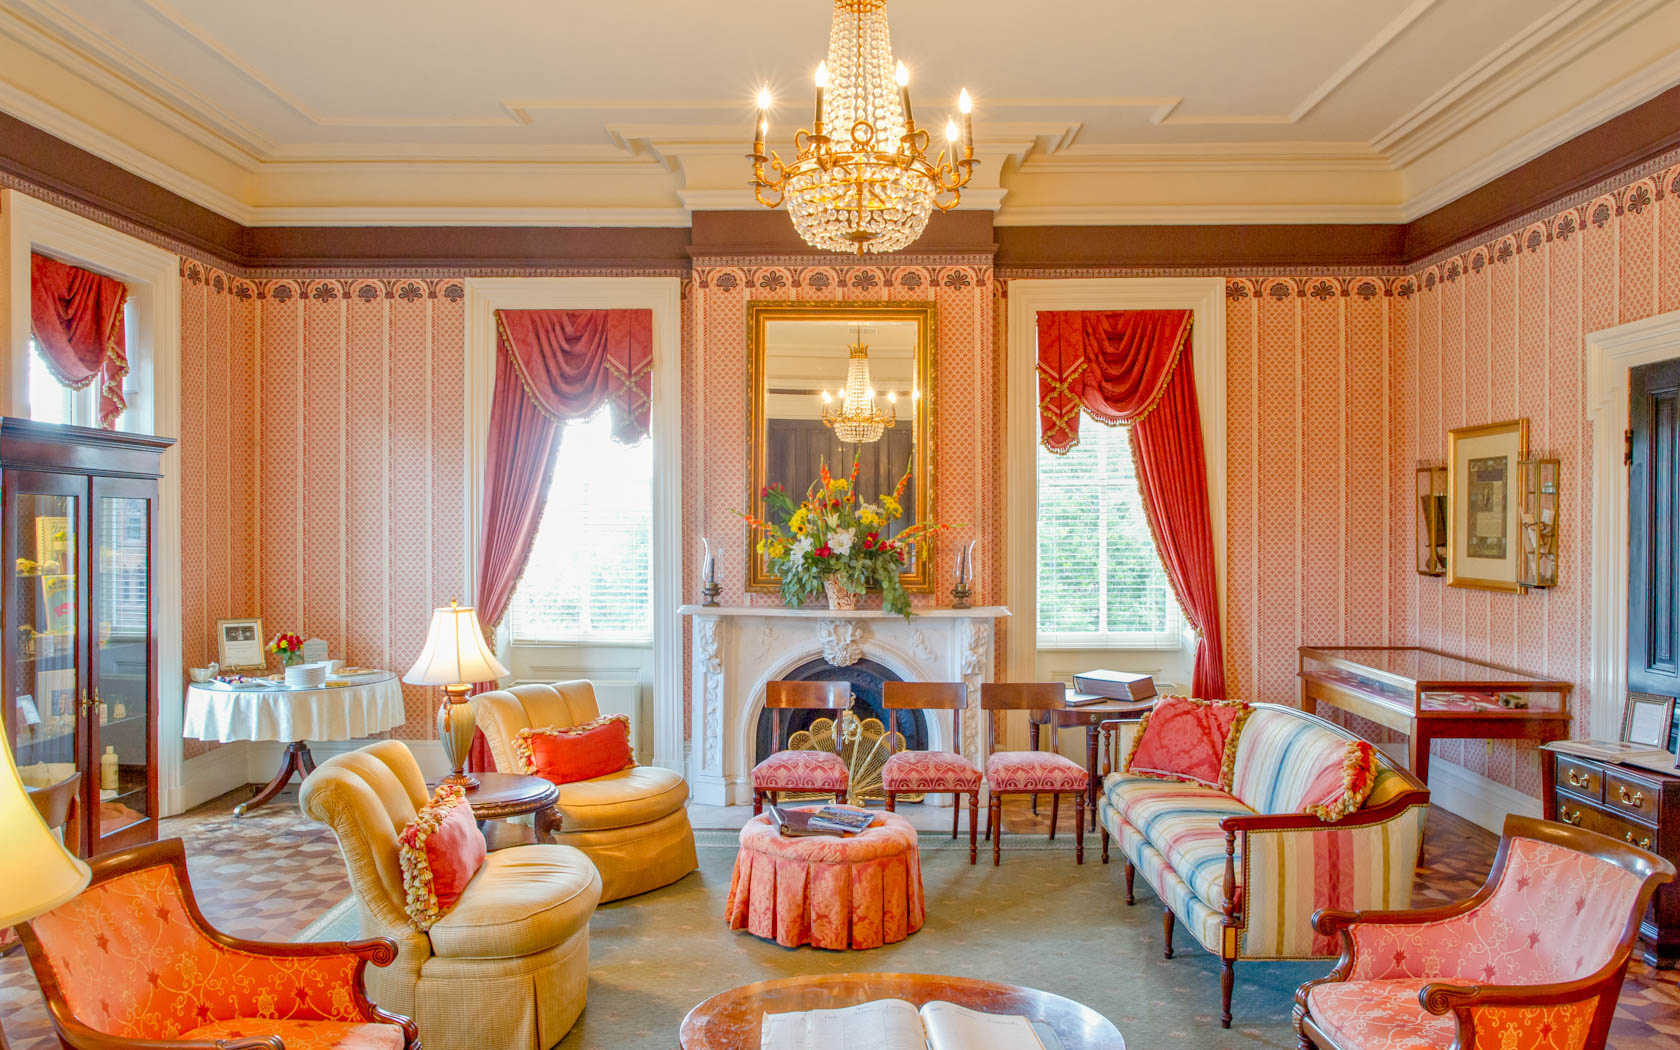 Elegant living space with peach padded chairs, yellow sofa, red curtains & crystal chandelier